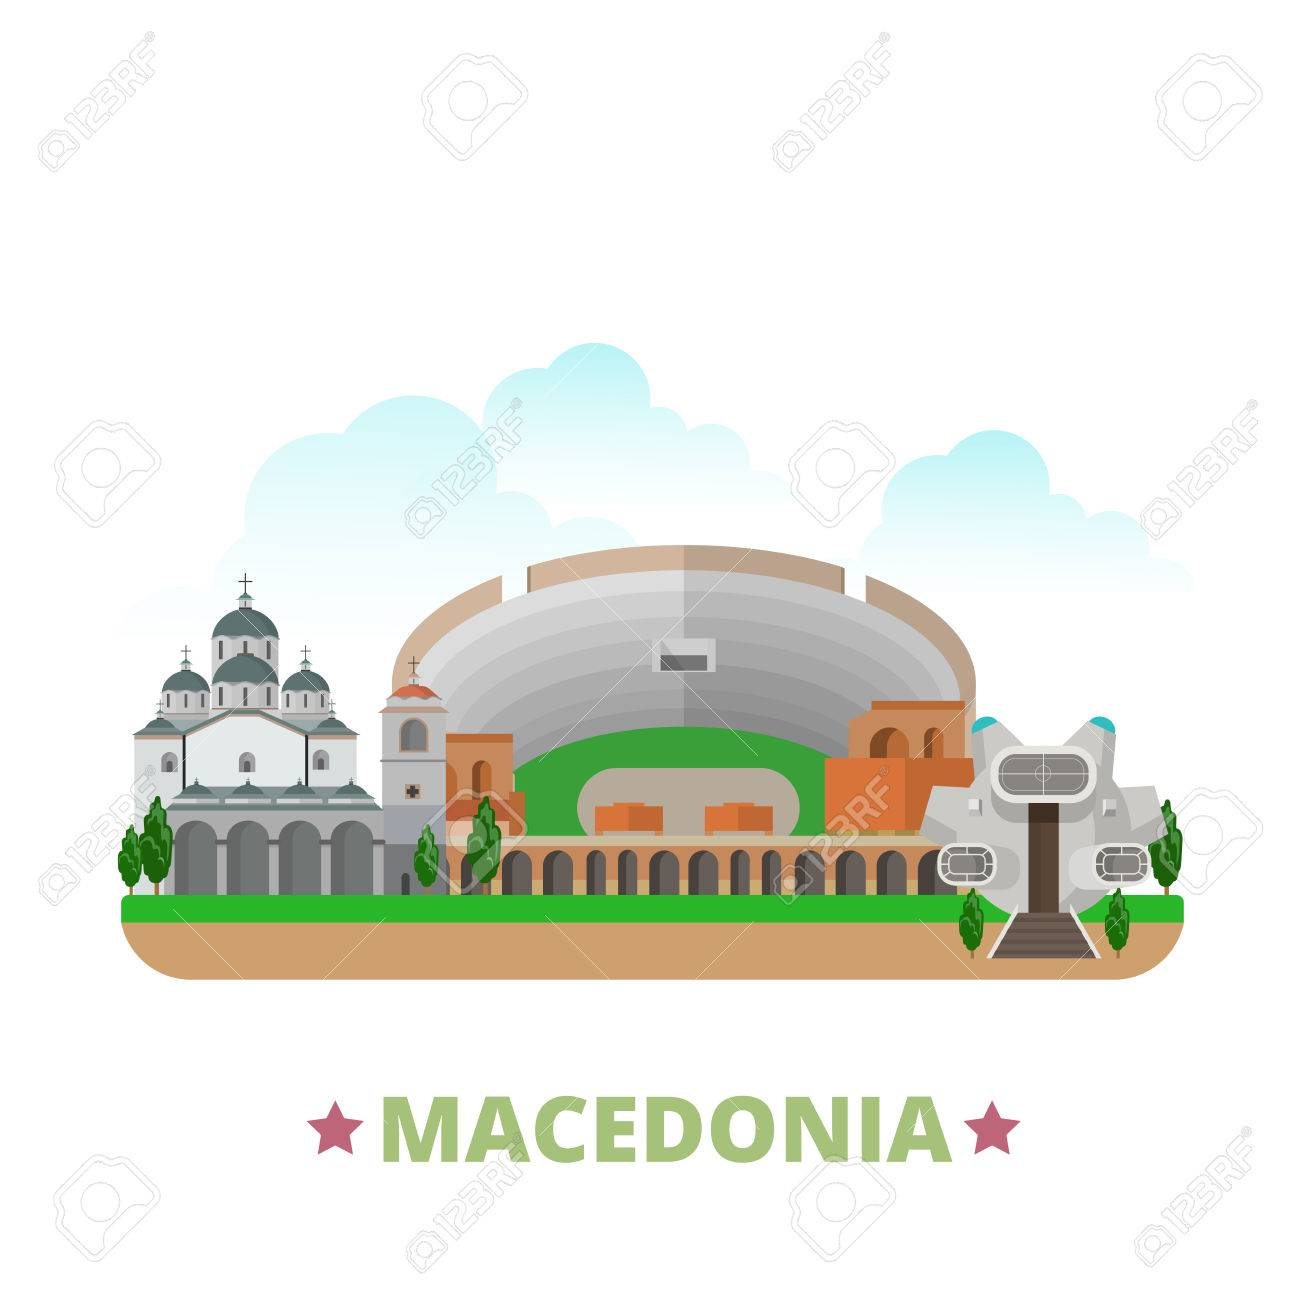 9,526 Old Church Stock Vector Illustration And Royalty Free Old ...